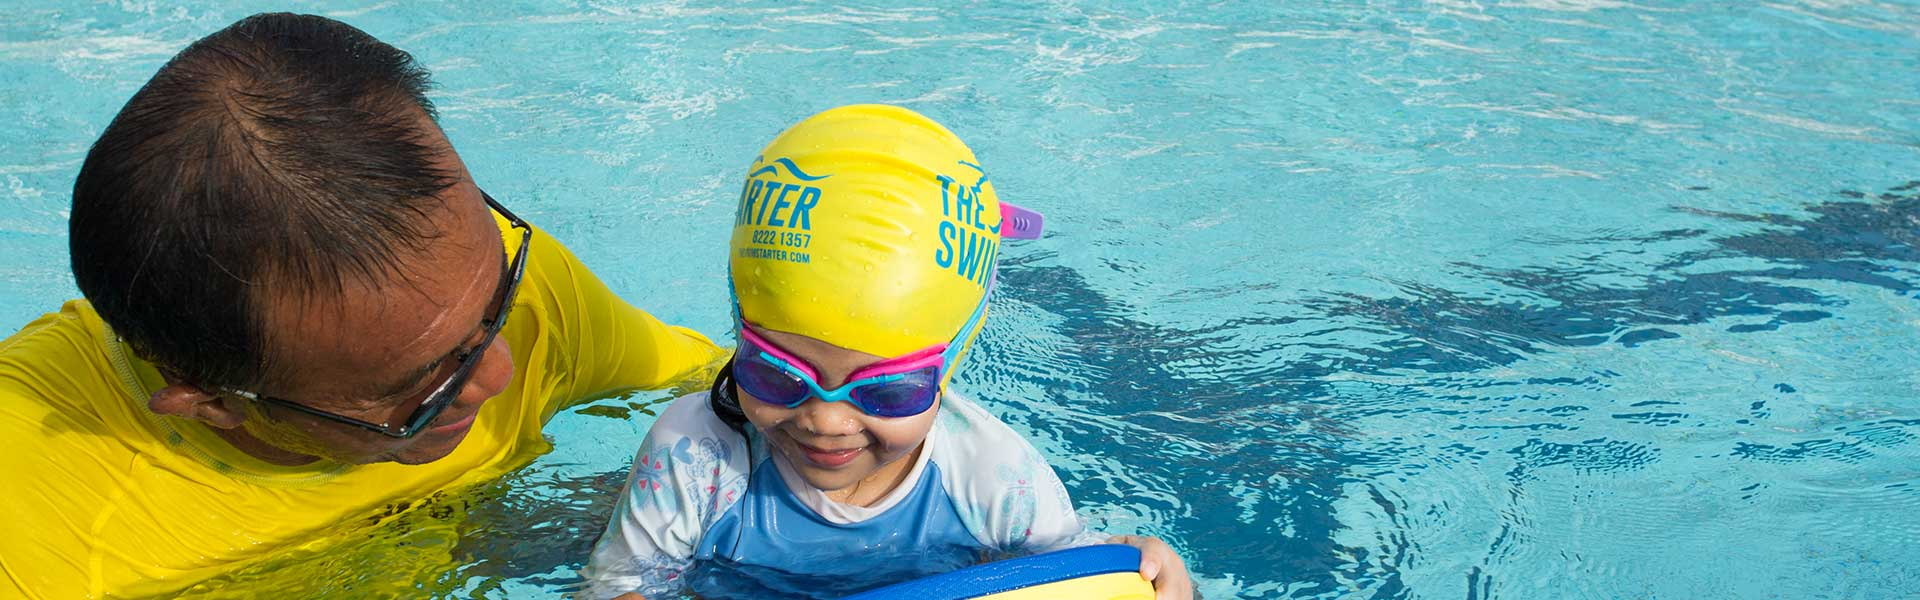 Swimming pool training for child by balancing in deep pool                  using a float with coach supervision